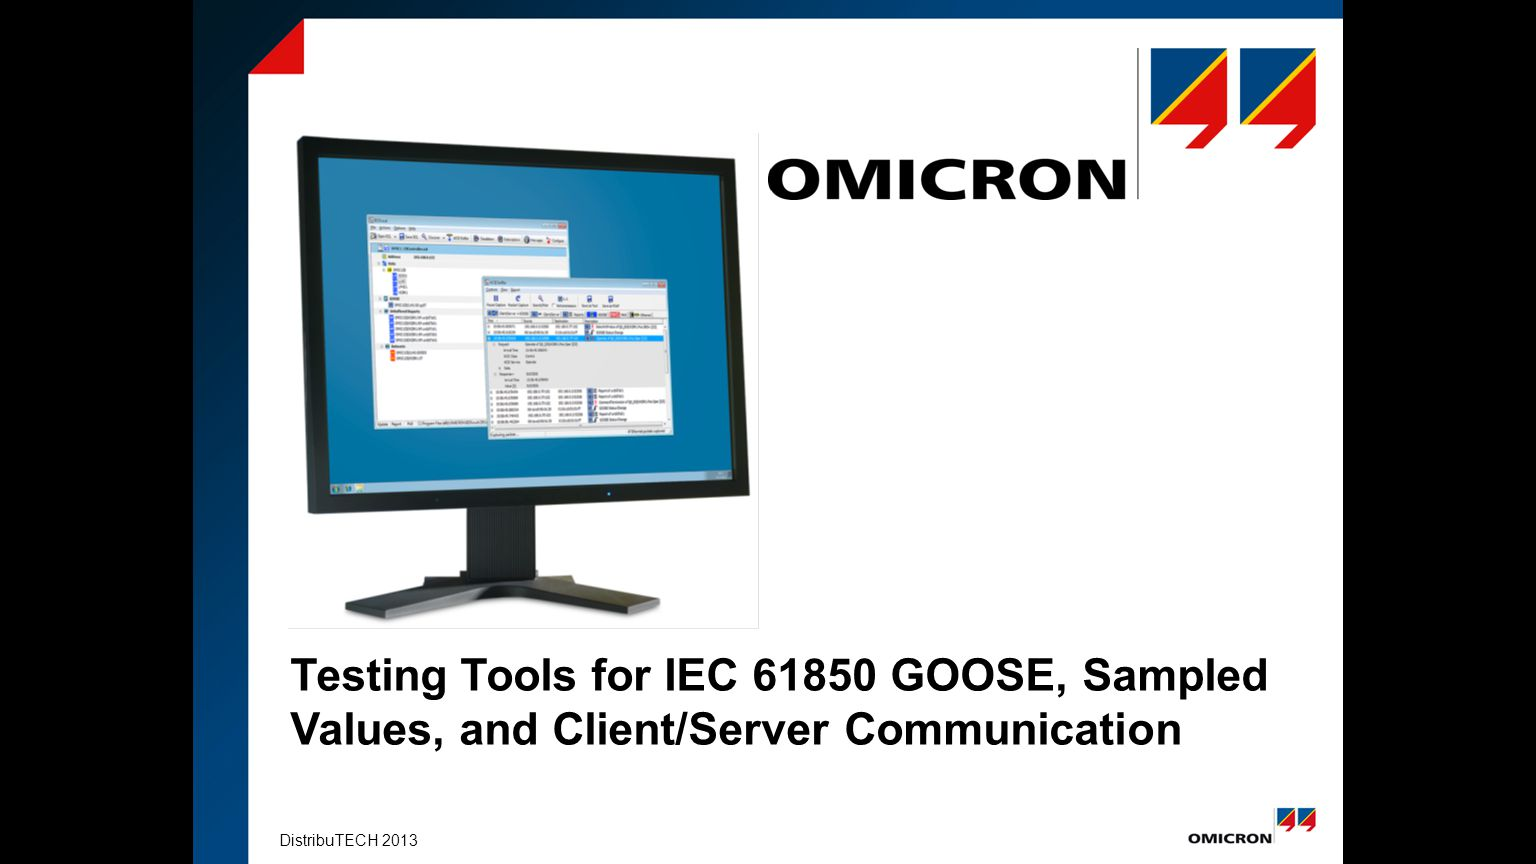 DistribuTECH 2013 Testing Tools for IEC 61850 GOOSE, Sampled Values, and Client/Server Communication